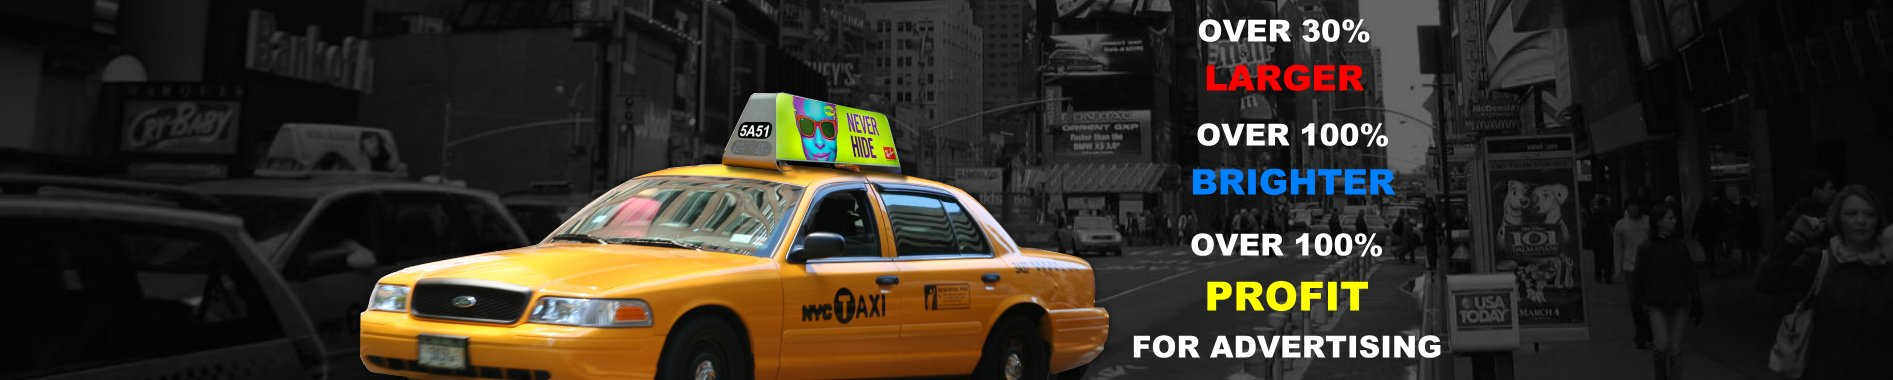 LED Taxi Display For Your Advertisement